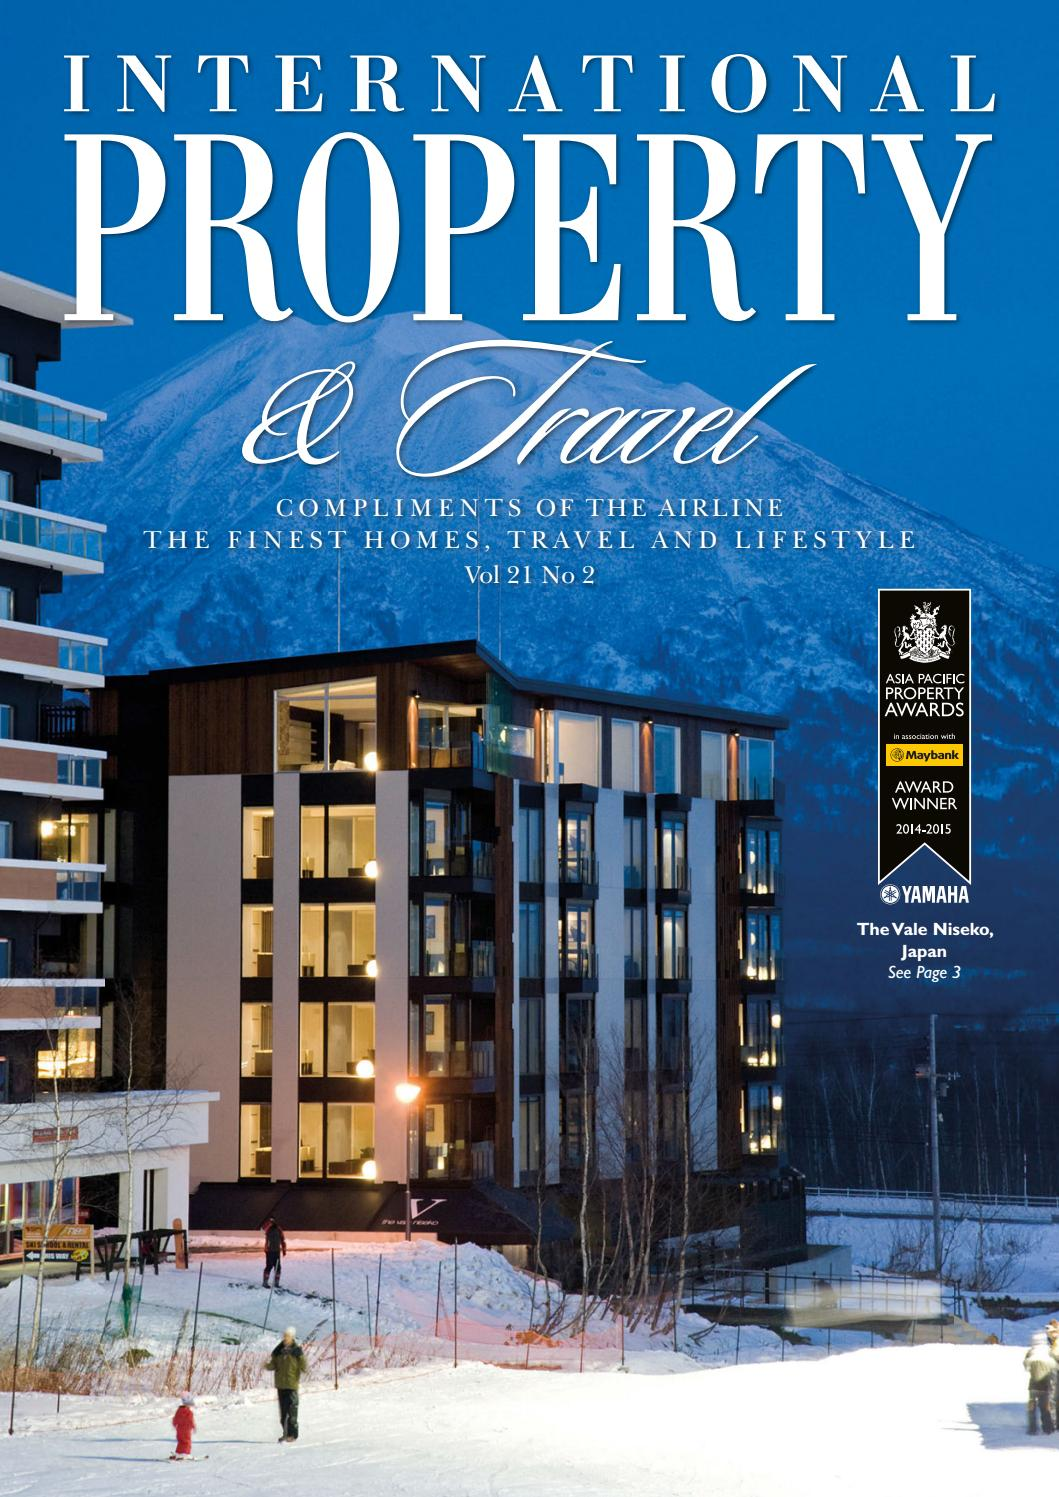 International Property Travel Volume 21 Number 2 By